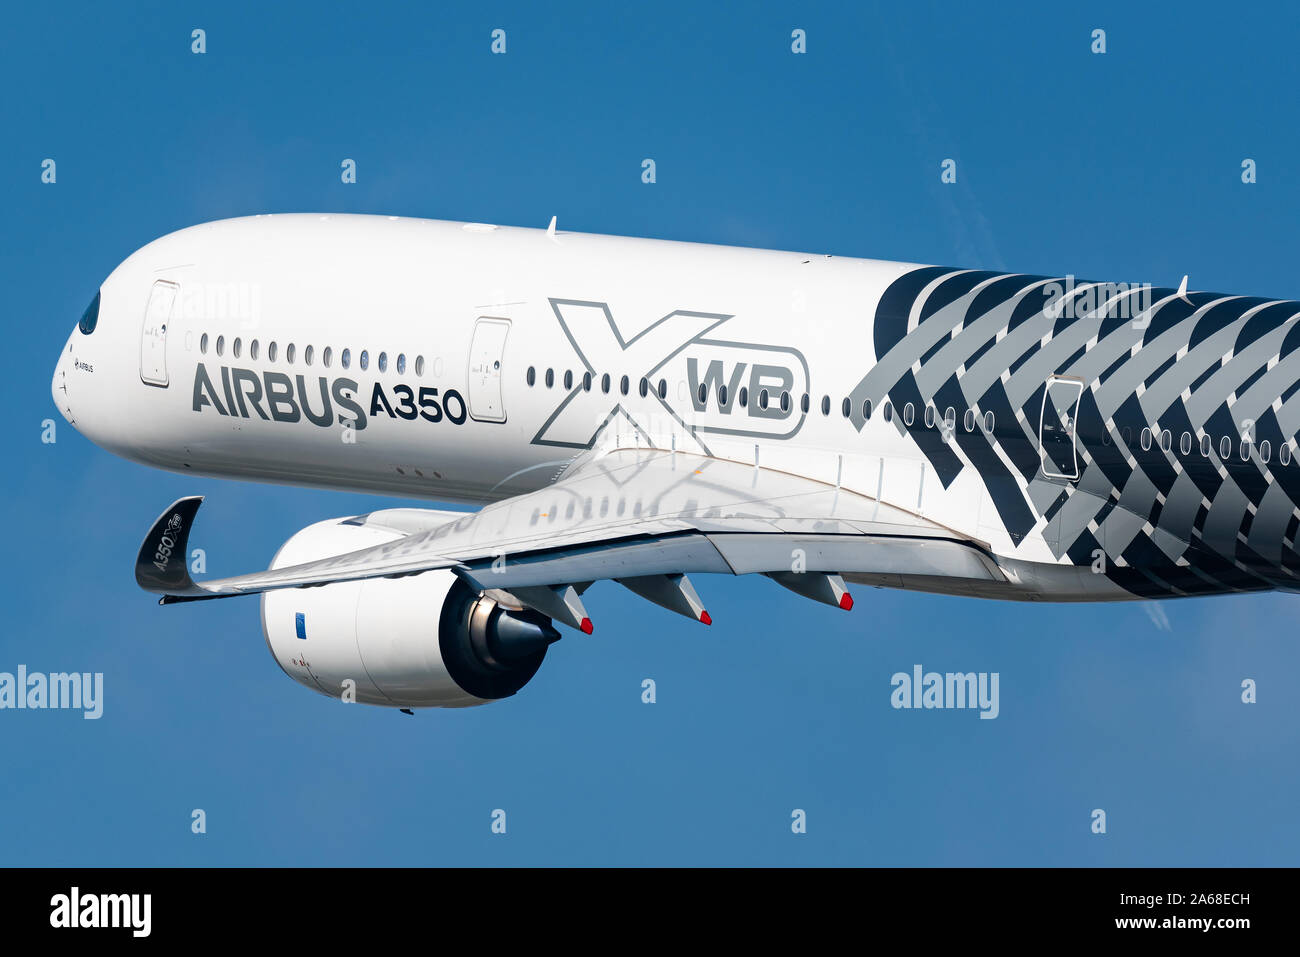 Demonstration flight of the Airbus A350 XWB long-range, twin-engine passenger airplane at the Maks 2019 airshow in Moscow. Stock Photo